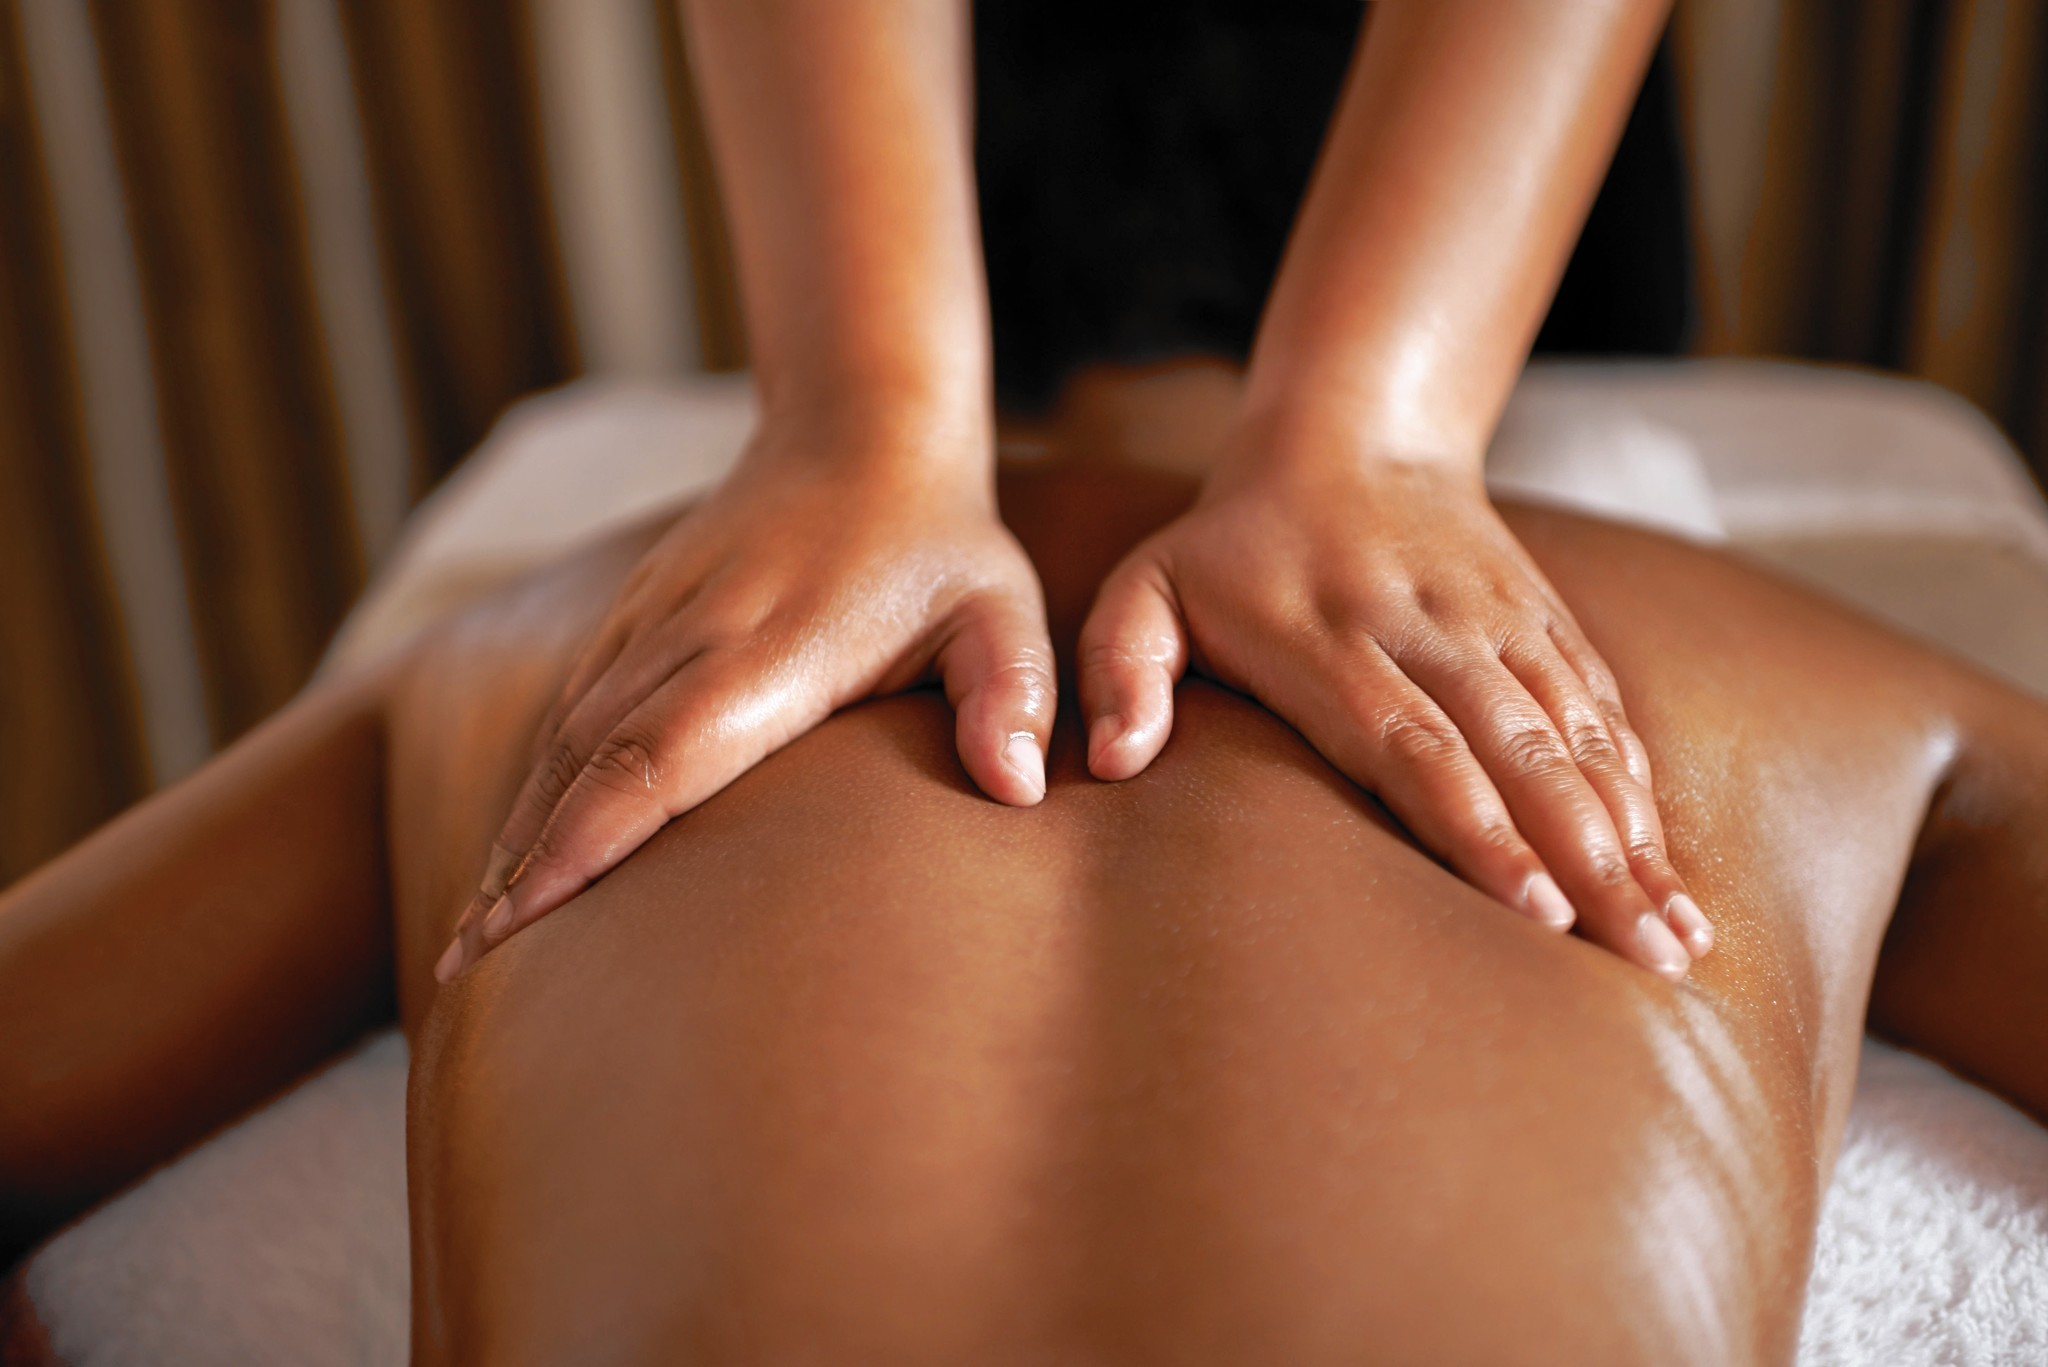 What is The Best Way to Find Affordable Spa Services?